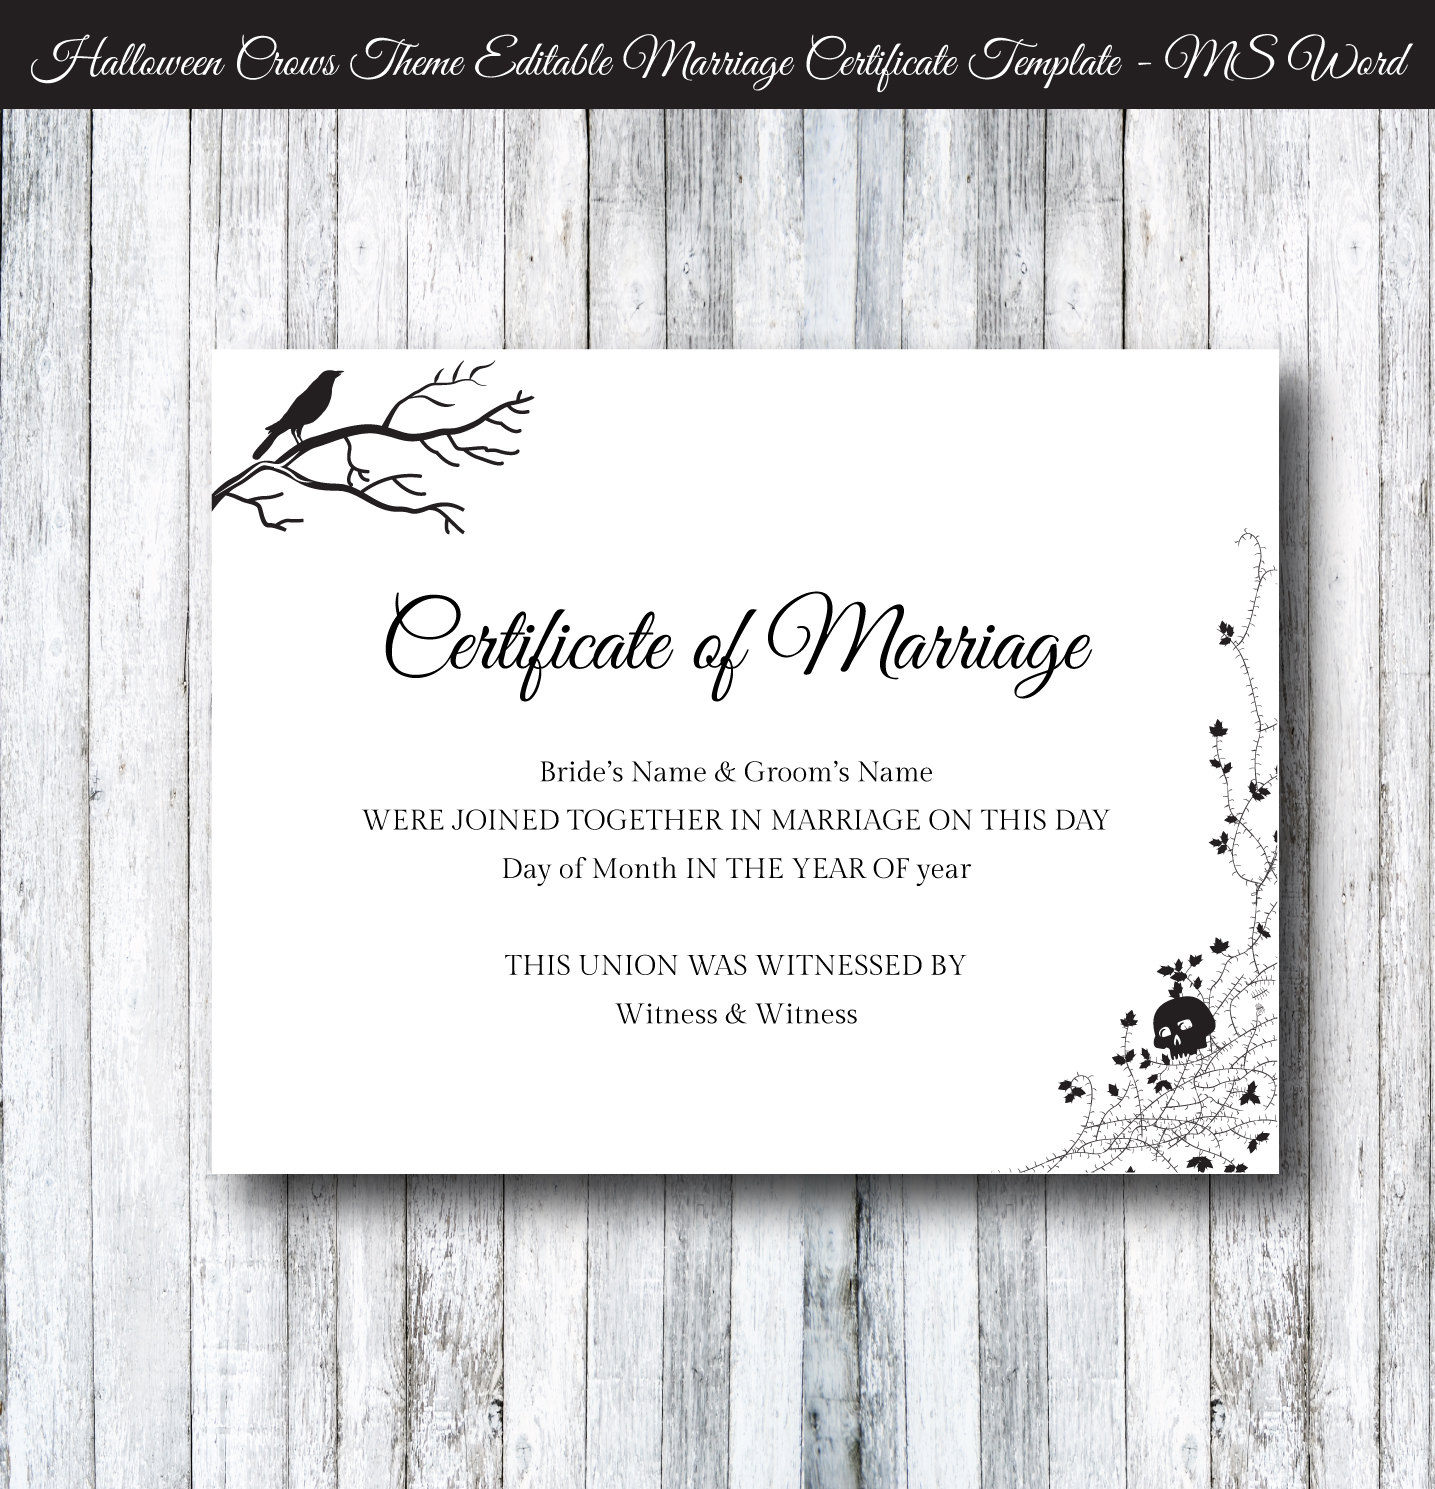 Certificate Templates For Halloween Choice Image Certificate Design